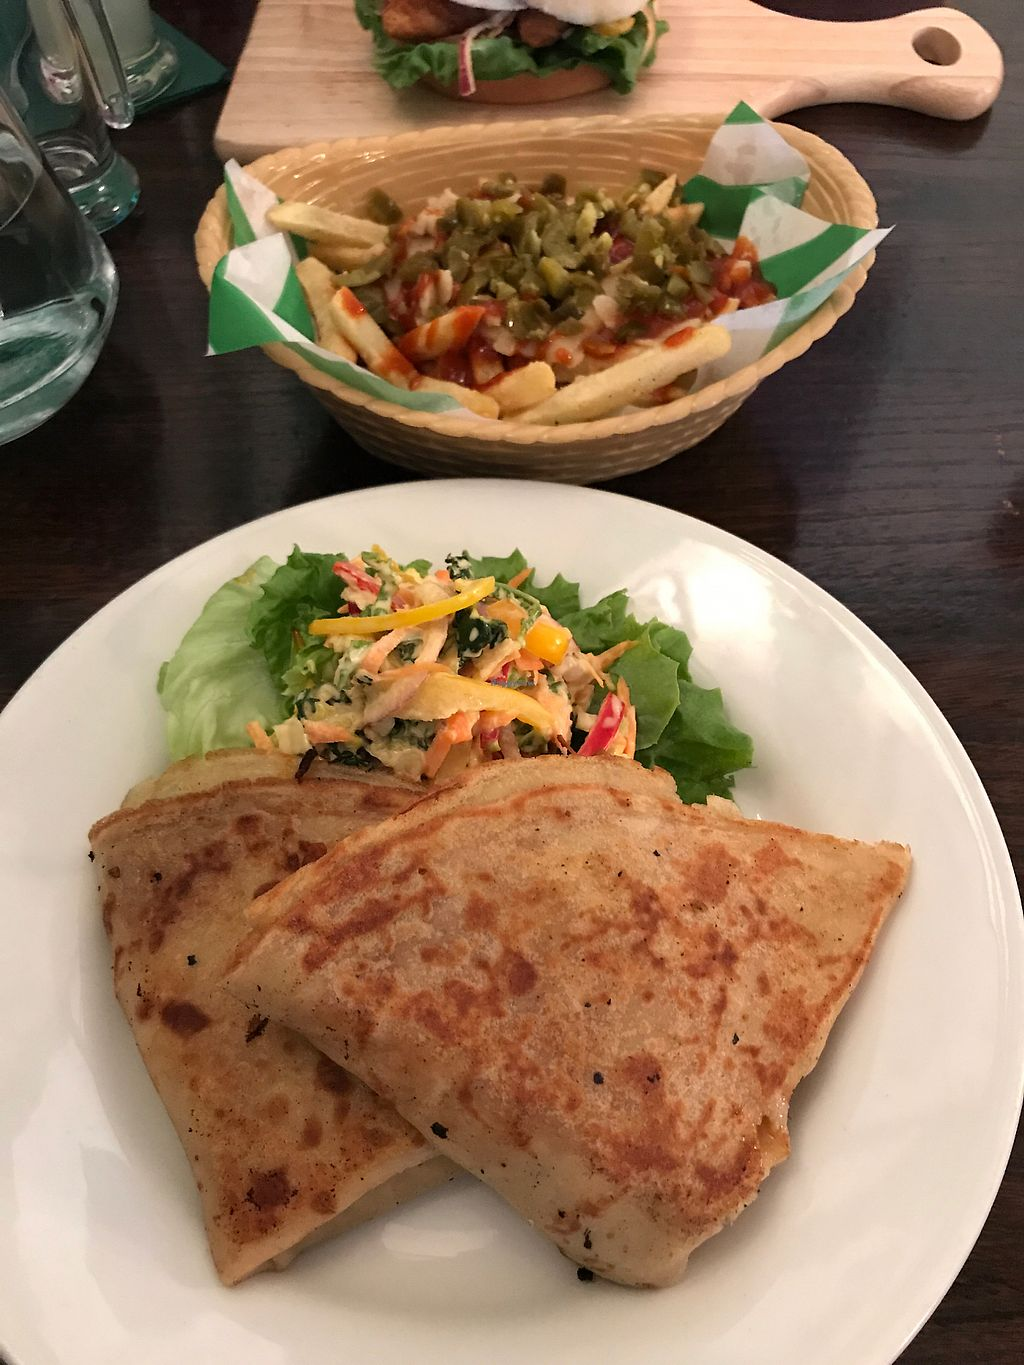 """Photo of Samphire Brasserie  by <a href=""""/members/profile/Weds"""">Weds</a> <br/>pulled jackfruit crepes <br/> September 2, 2017  - <a href='/contact/abuse/image/38330/299921'>Report</a>"""